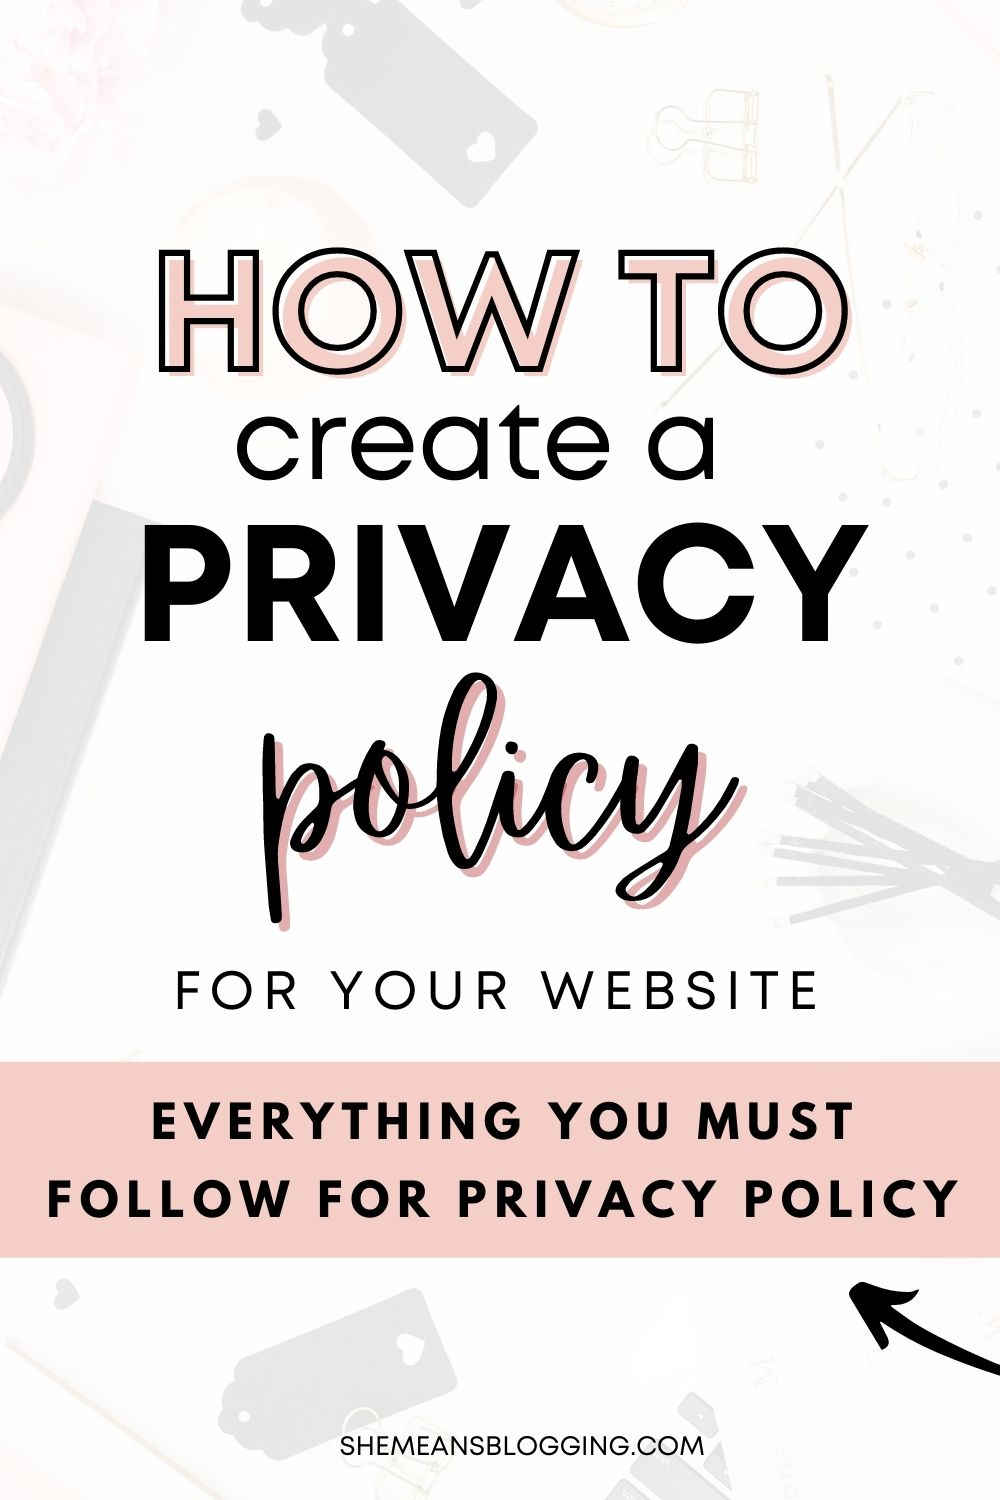 Privacy policy is a legally required document for every website! Your website must have a privacy policy. Here is how to create a privacy policy for your website. Make your website legally protective with this privacy policy #bloggingtips